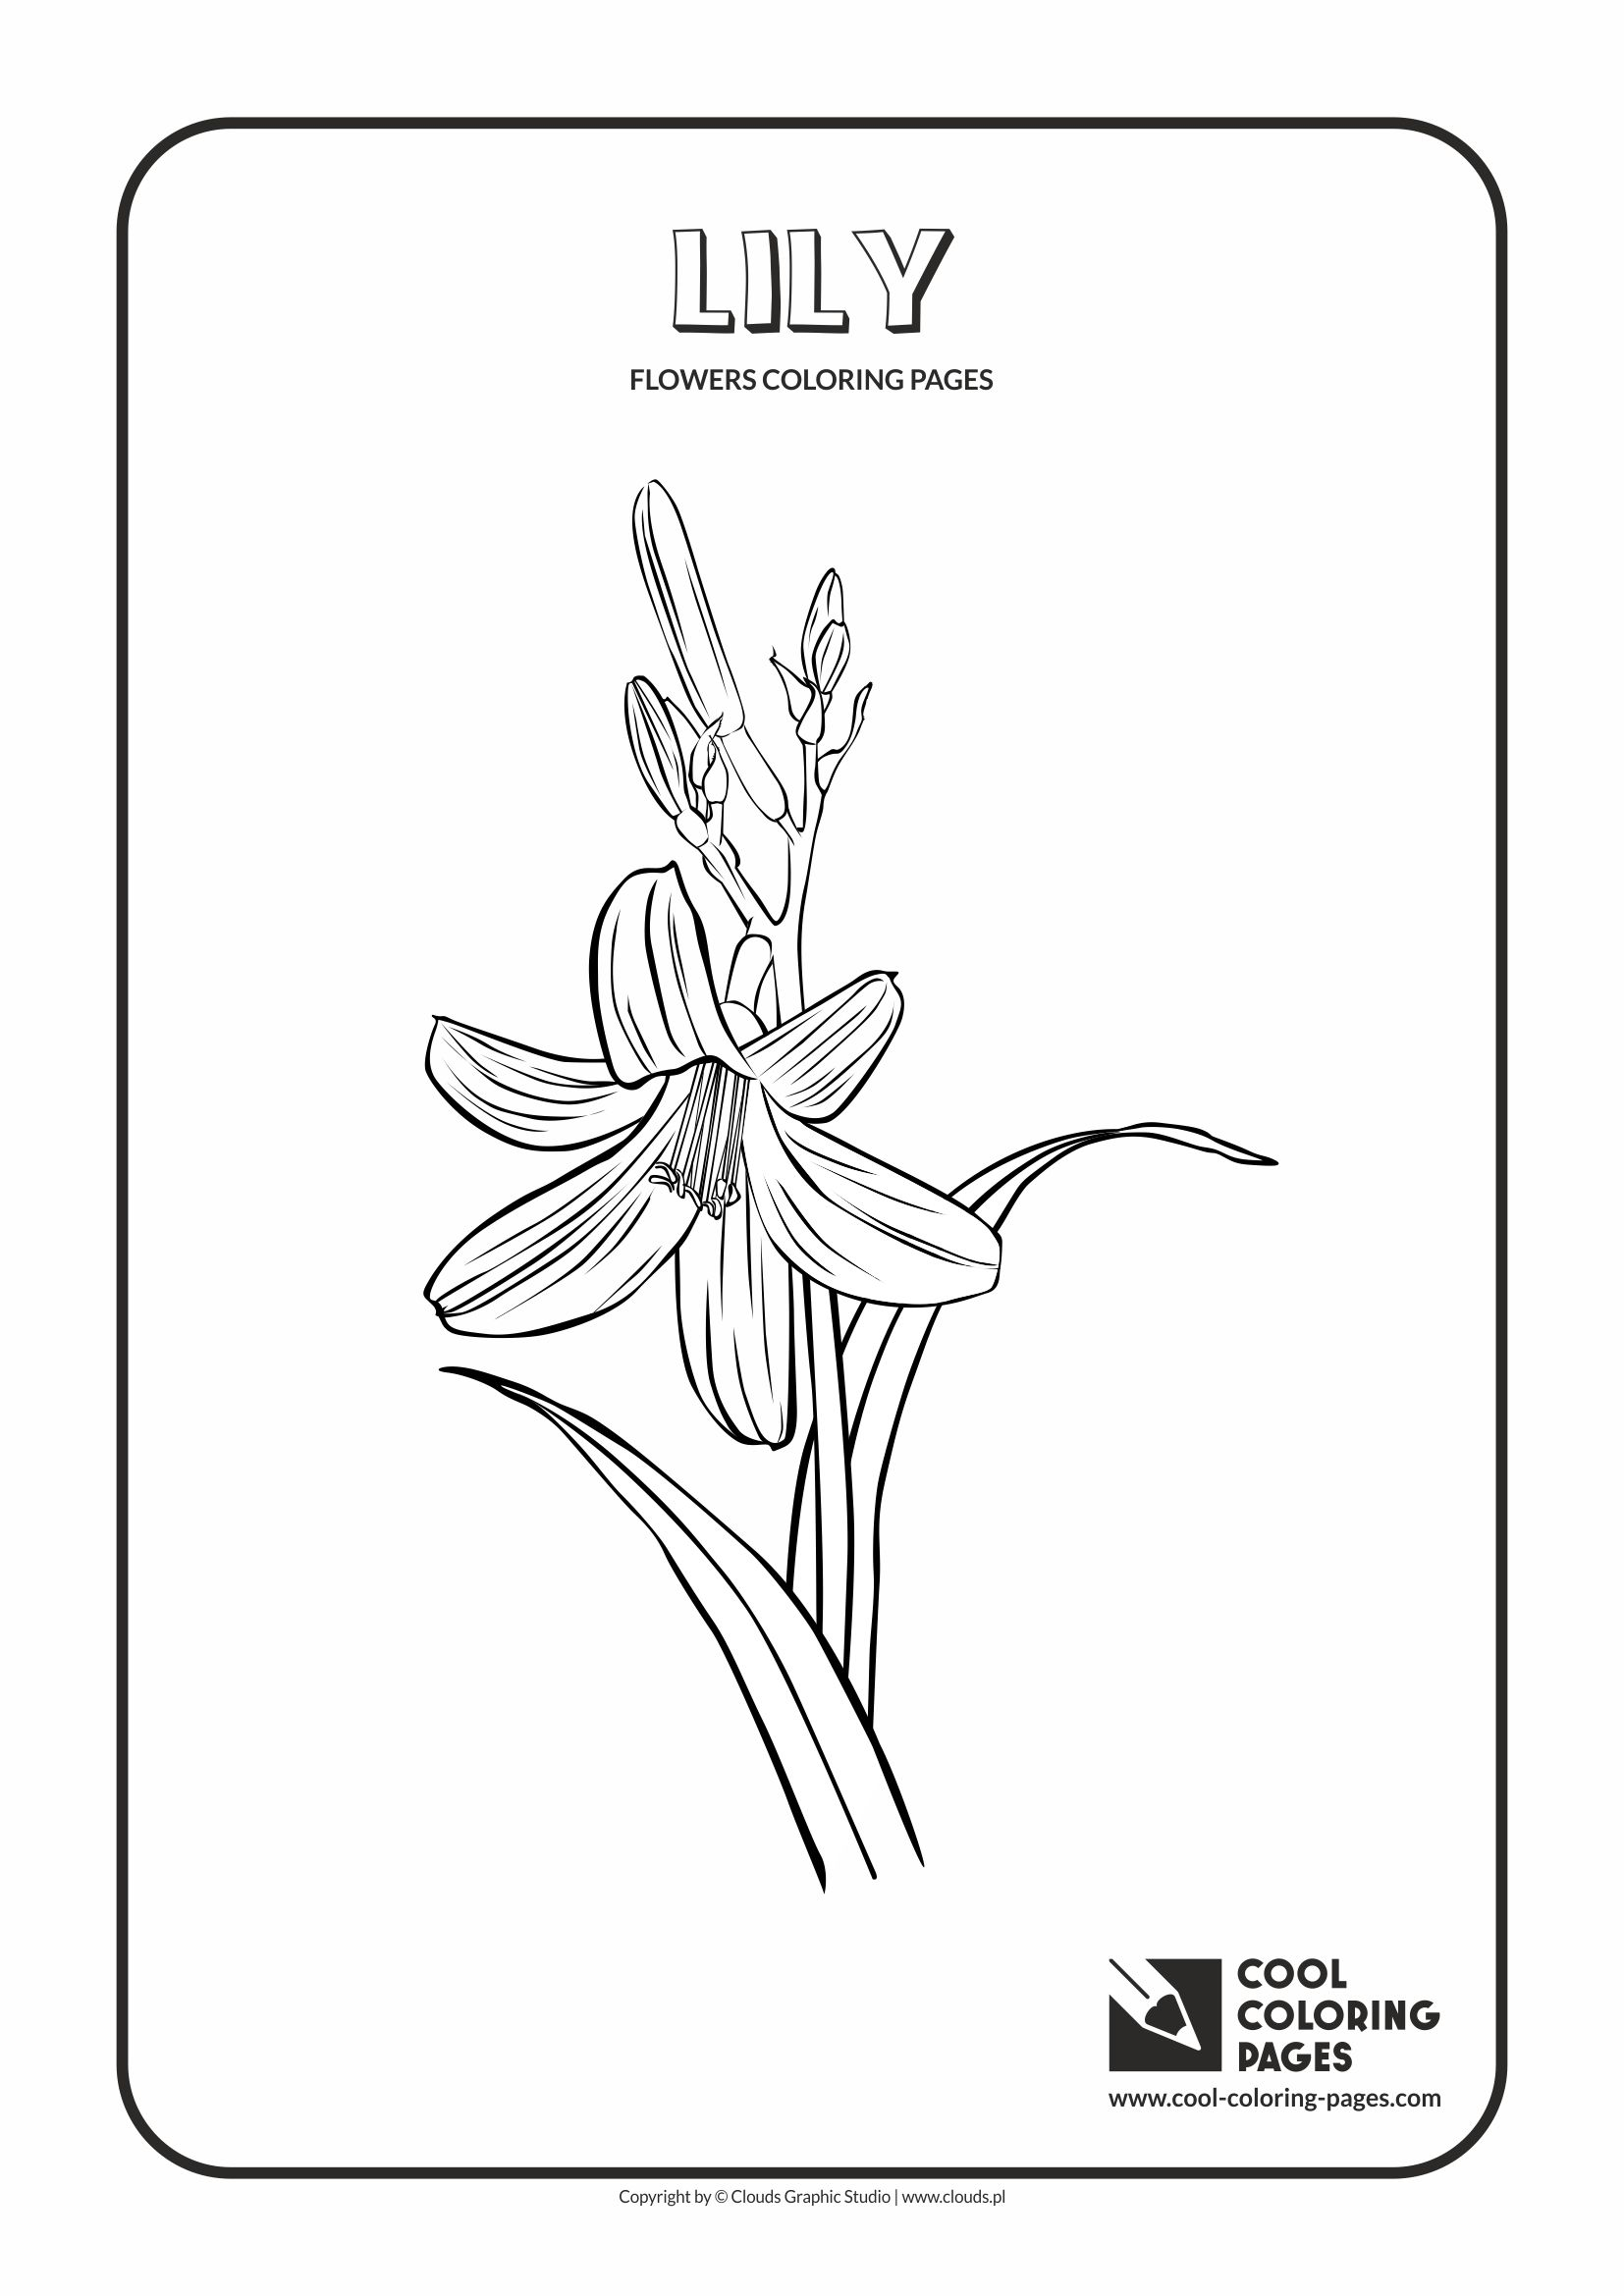 Cool Coloring Pages - Plants / Lily / Coloring page with lily